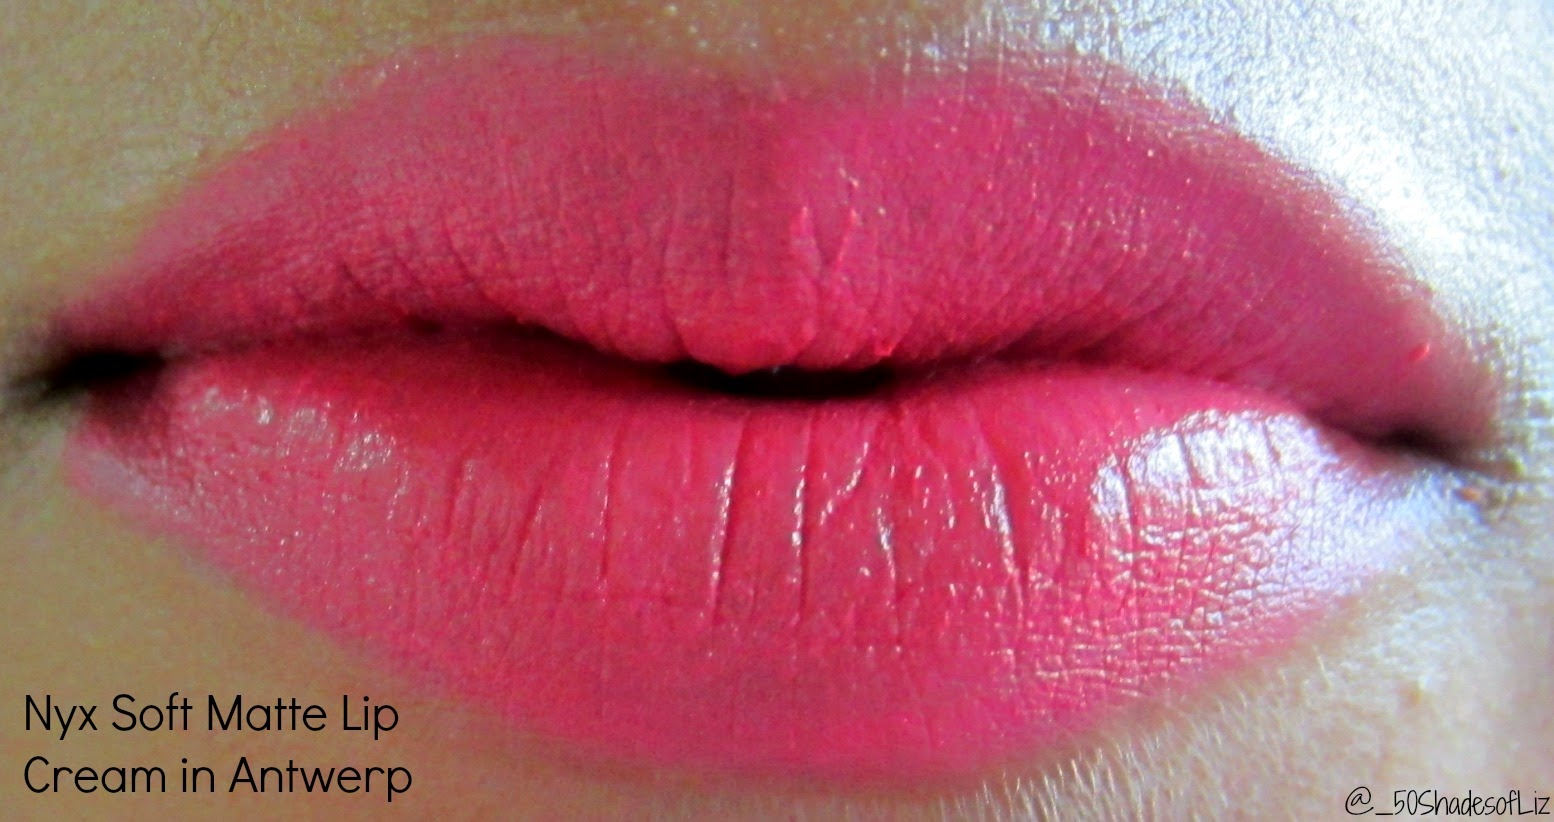 Nyx Soft Matte Lip Cream in Antwerp